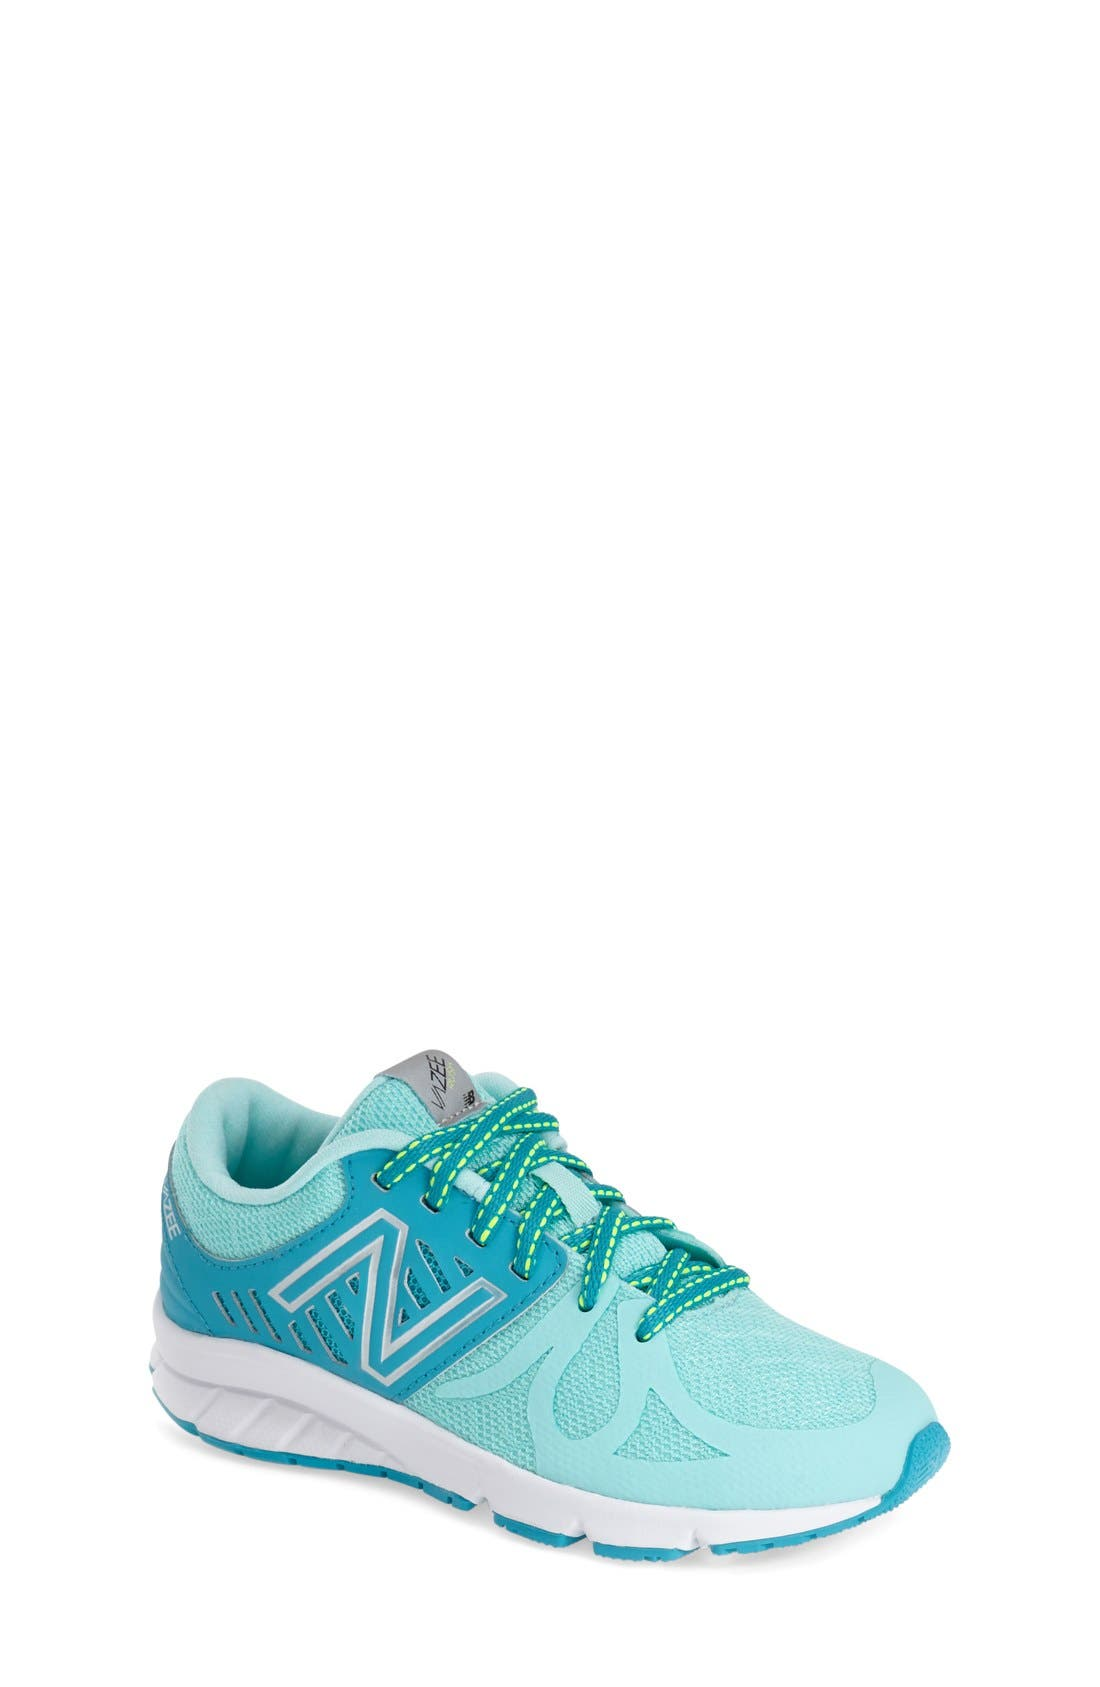 '200 Rush Vazee' Athletic Shoe, Main, color, 449